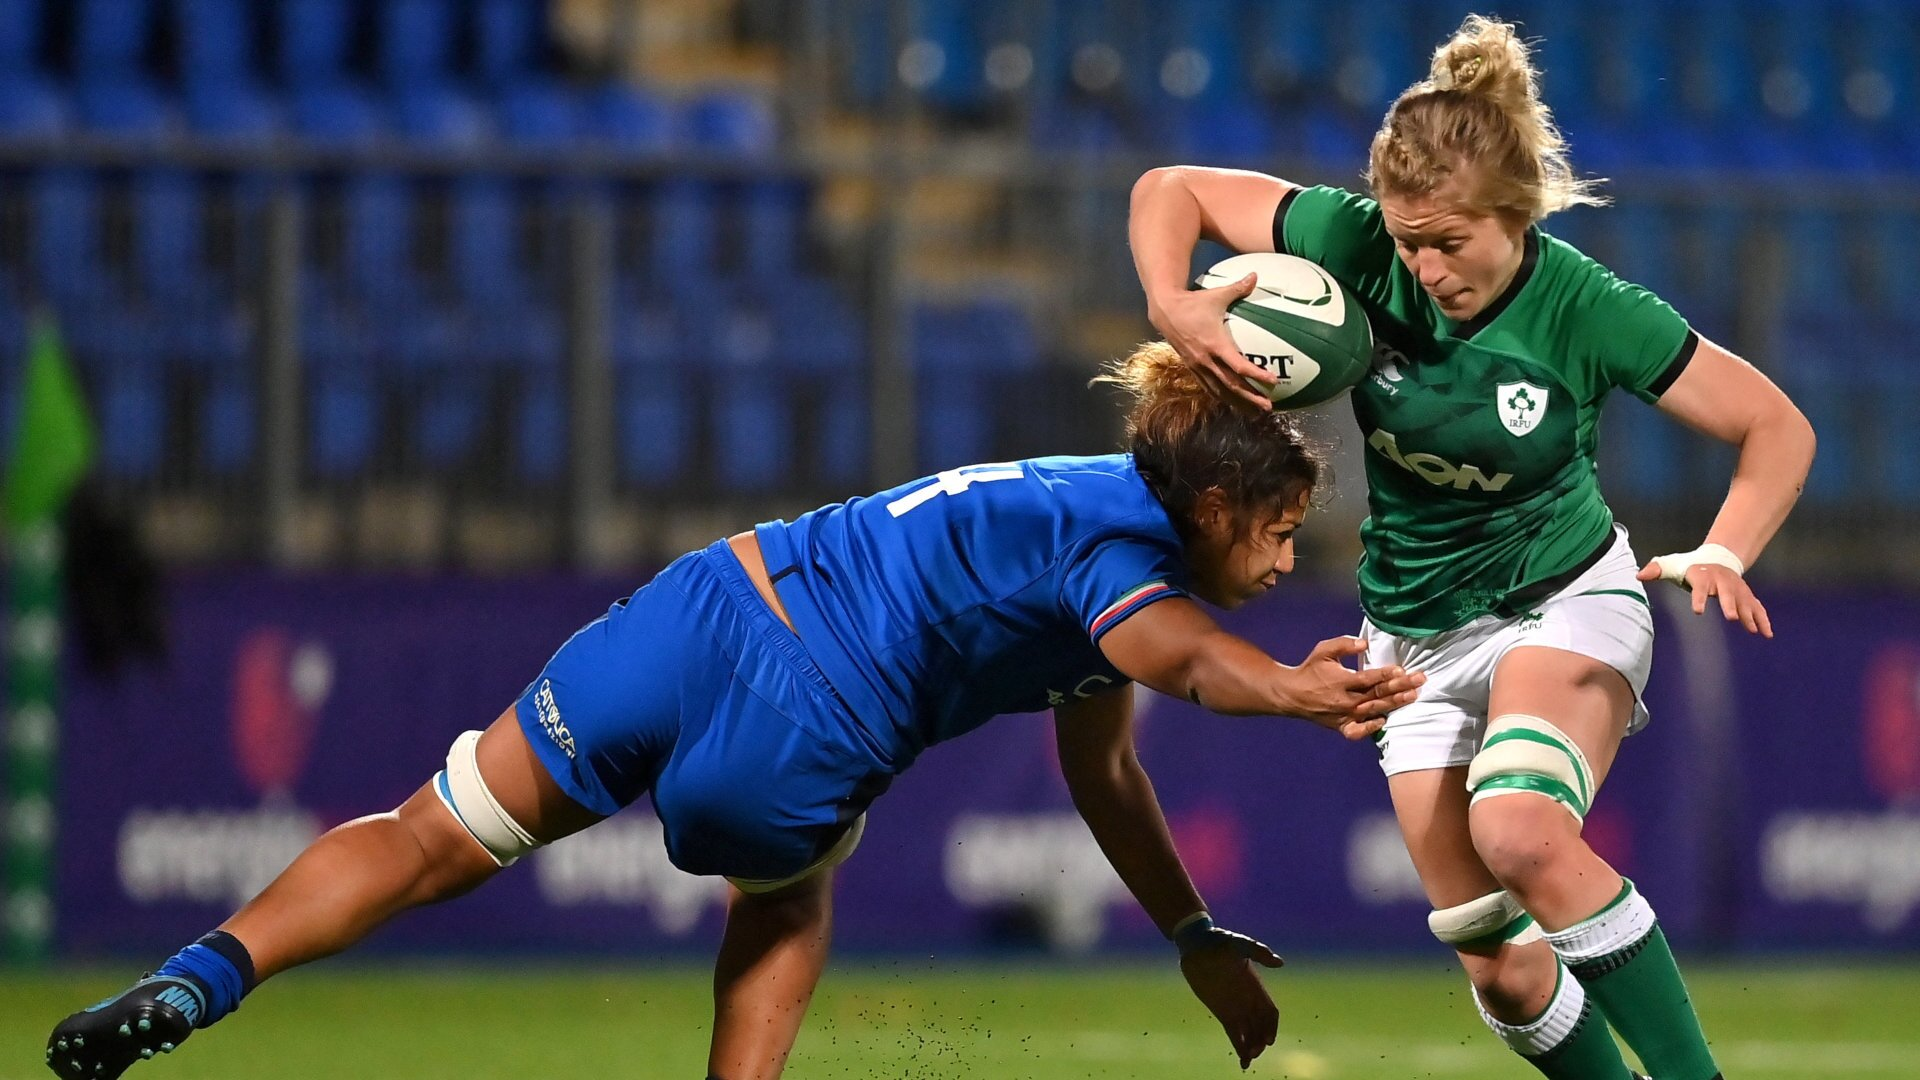 Ireland fight back to beat Italy as Women's Six Nations resumes in Dublin